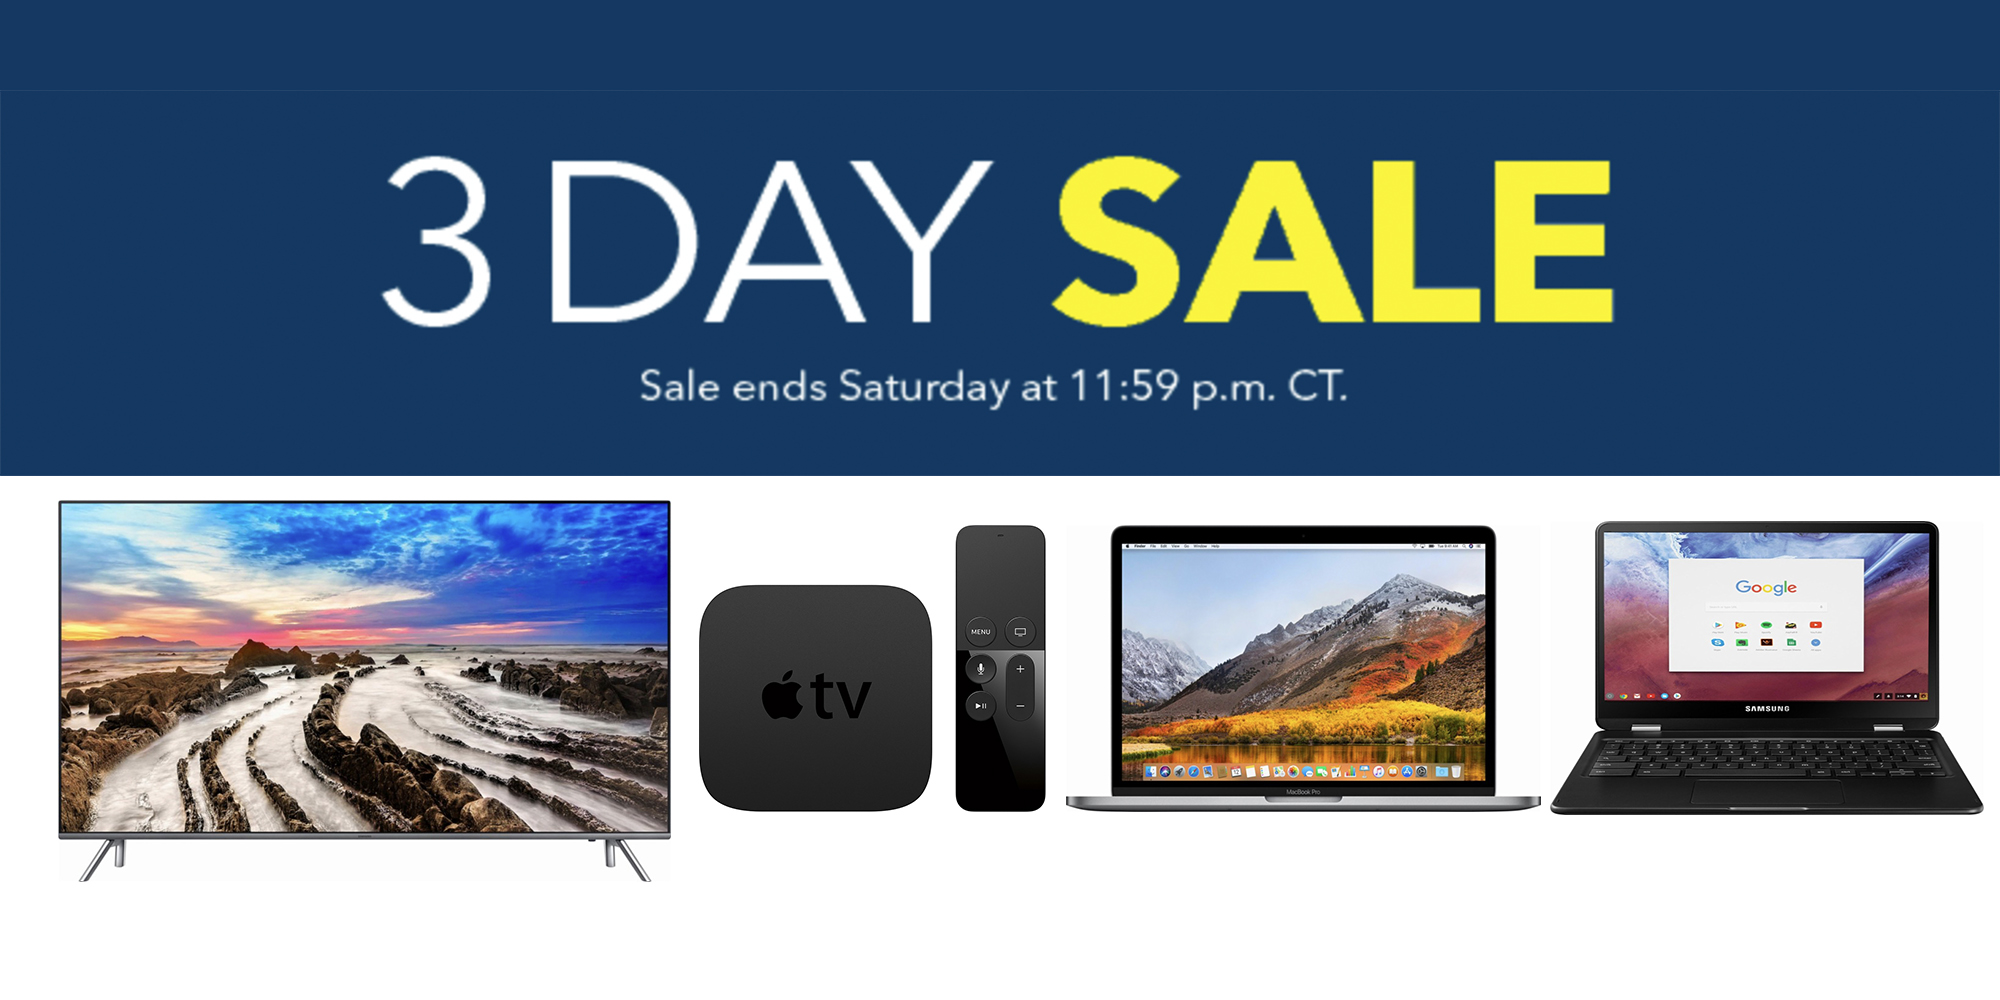 Best Buy unveils new 3-day sale: MacBook Pros from $1,050, Chromebooks, TVs, much more